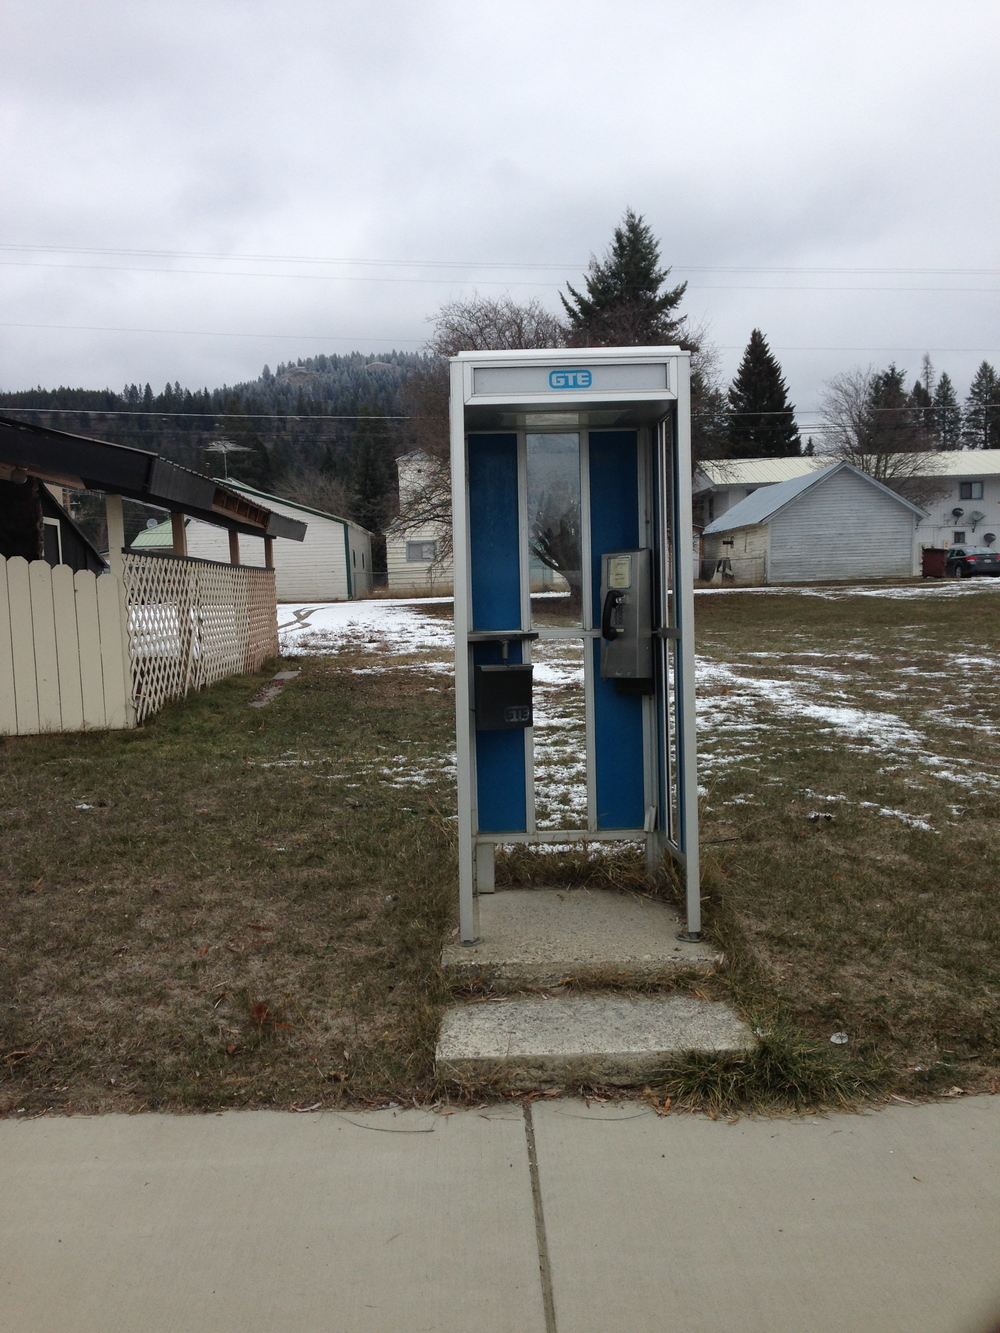 What the?! Our town actually has a phone booth!